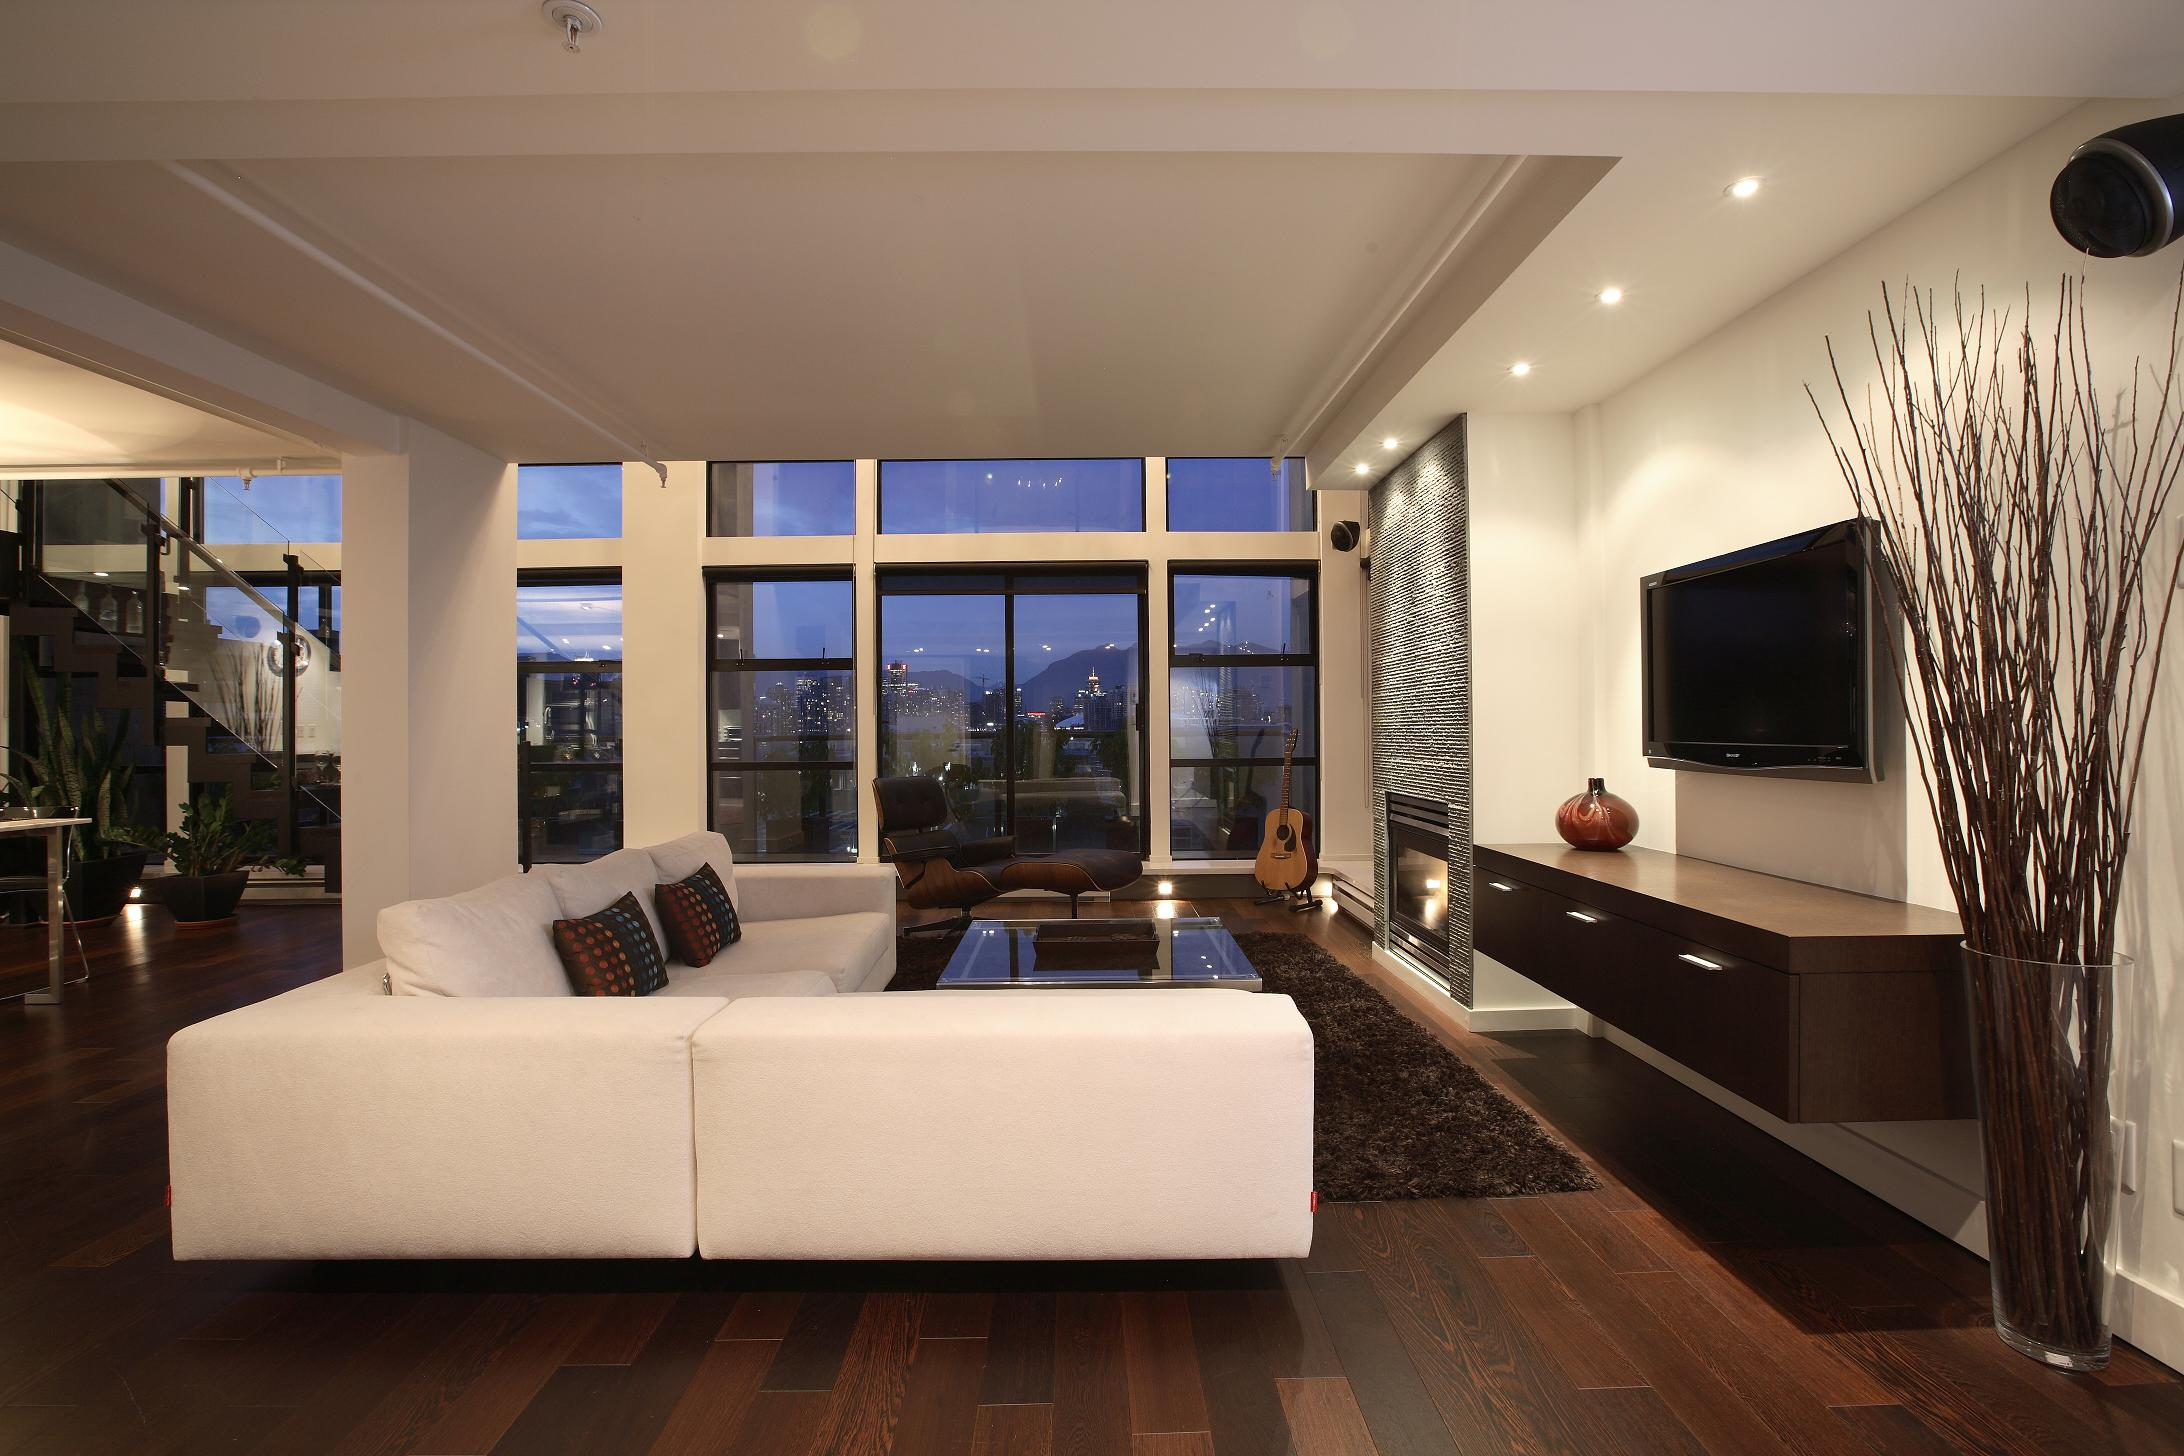 Modern apartment interior design homesfeed - Modern apartment interior design ...